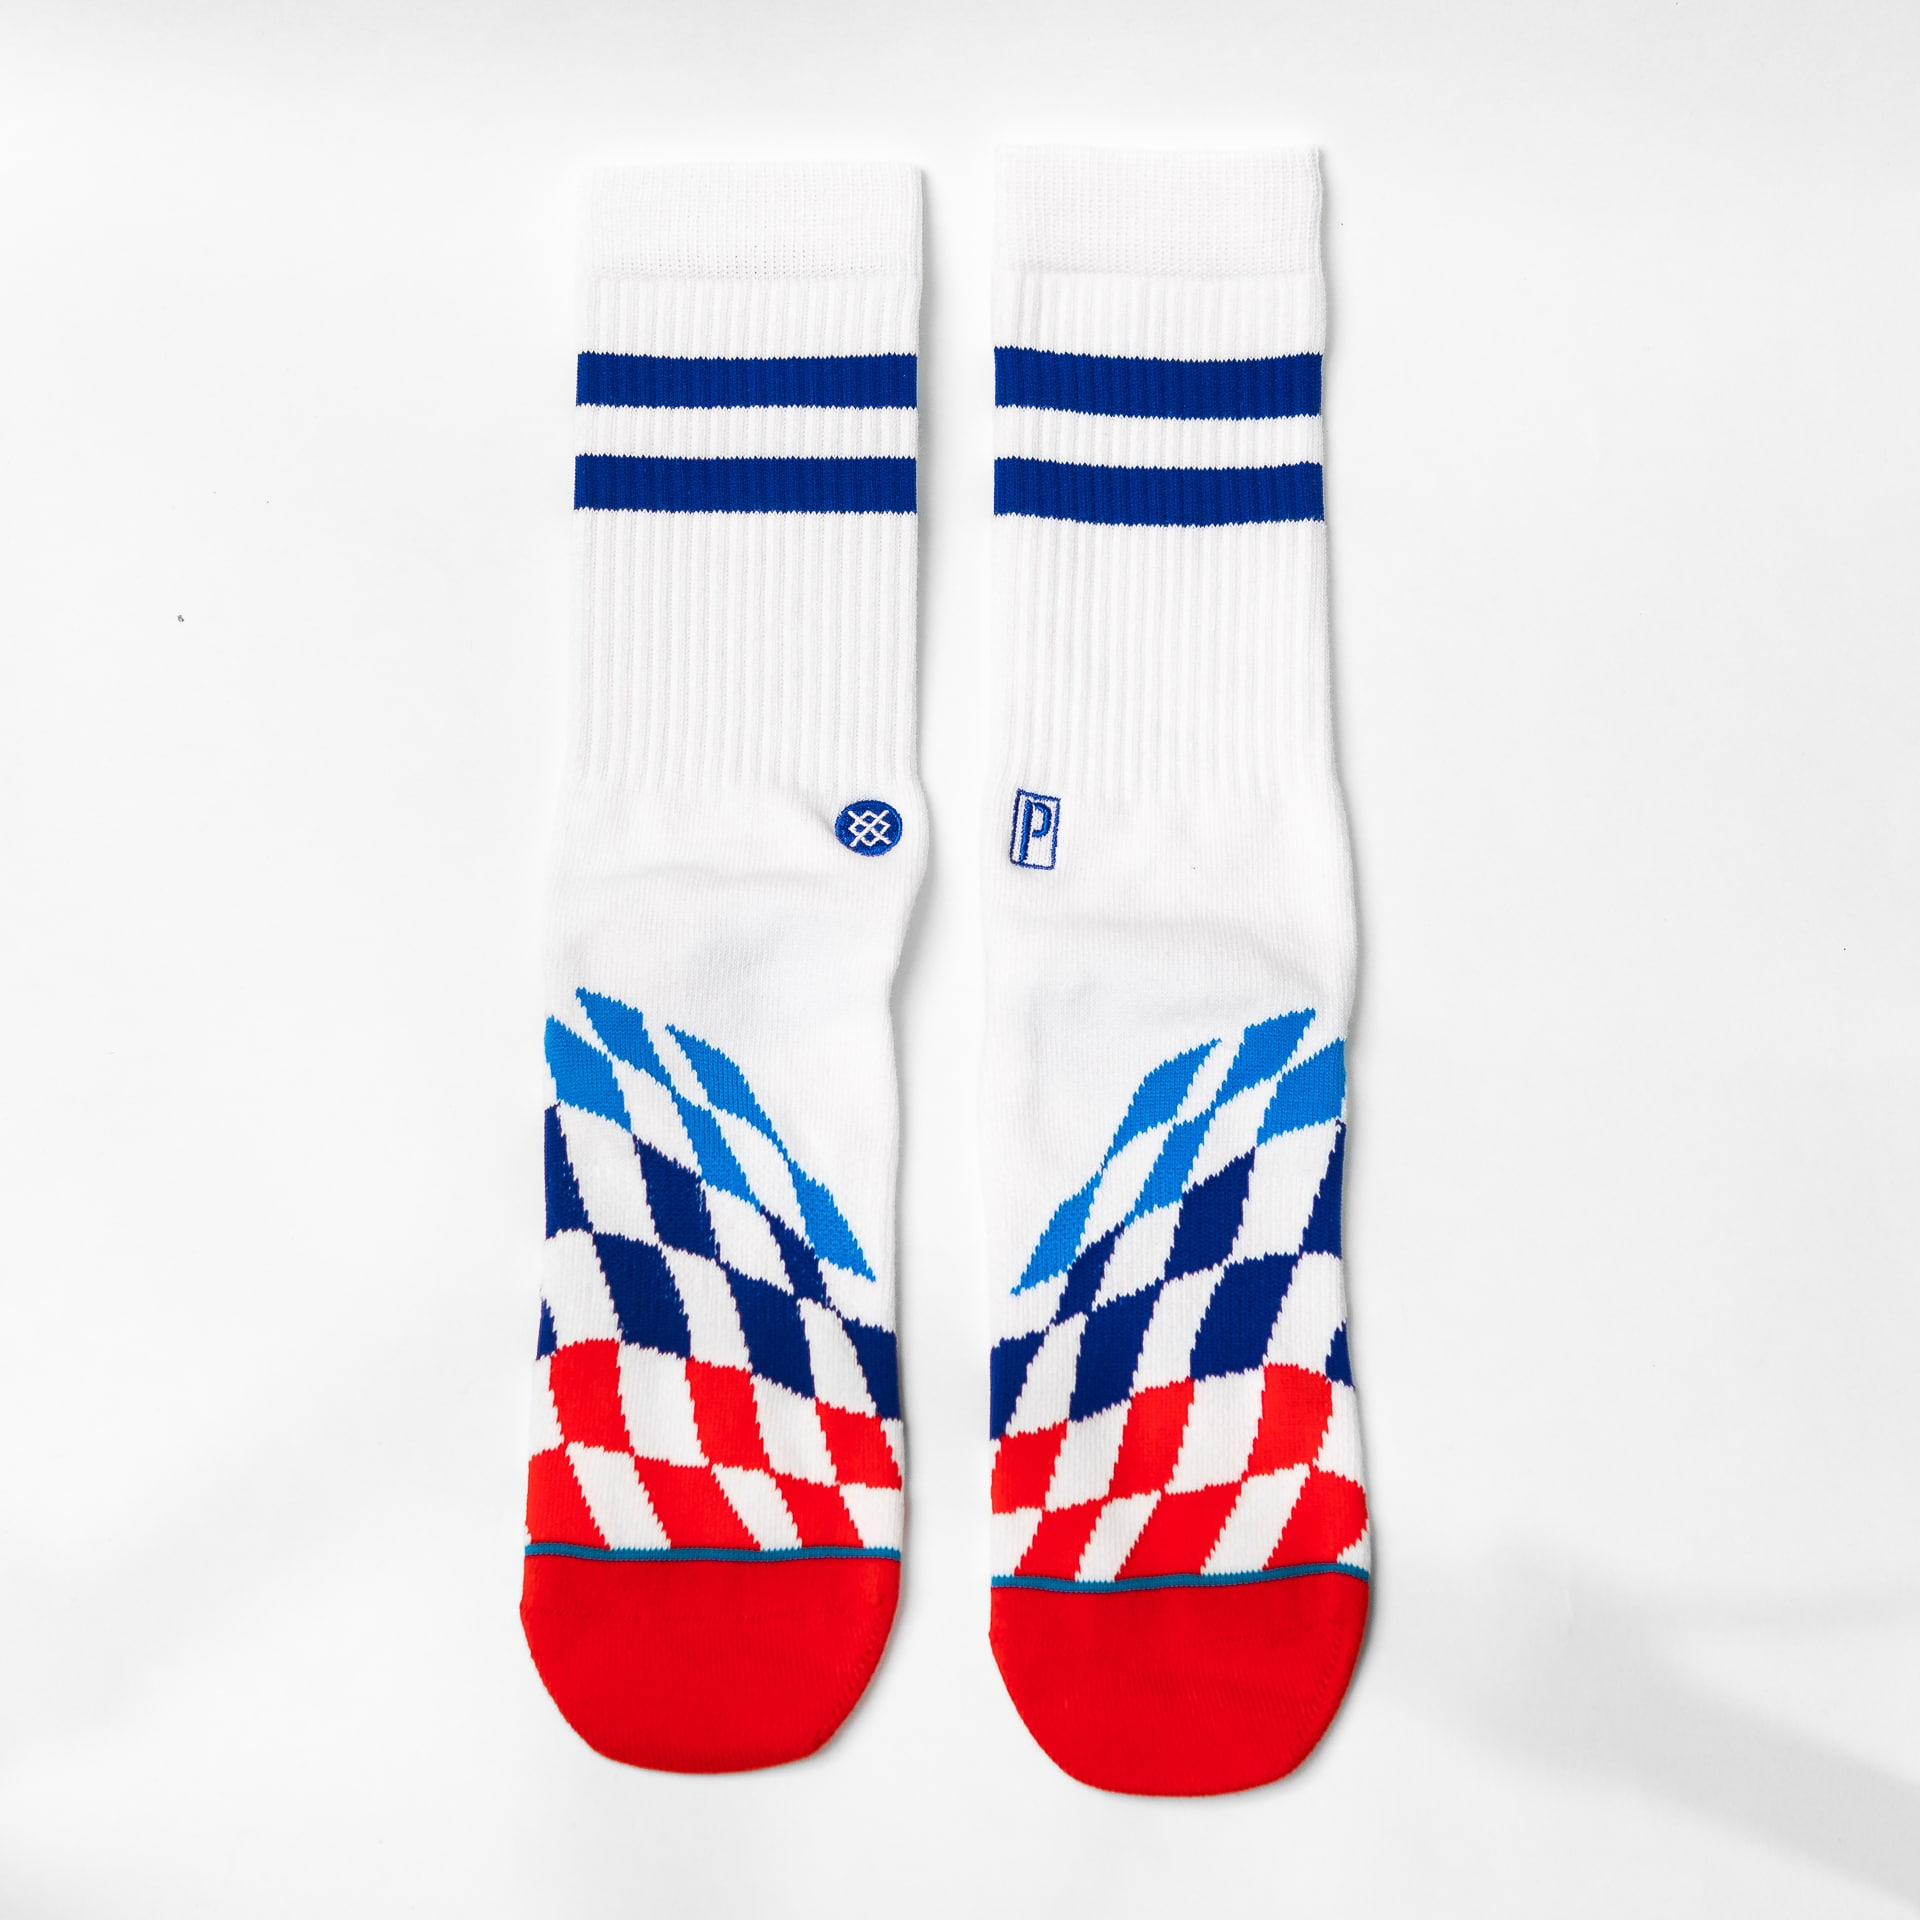 BMW Socks